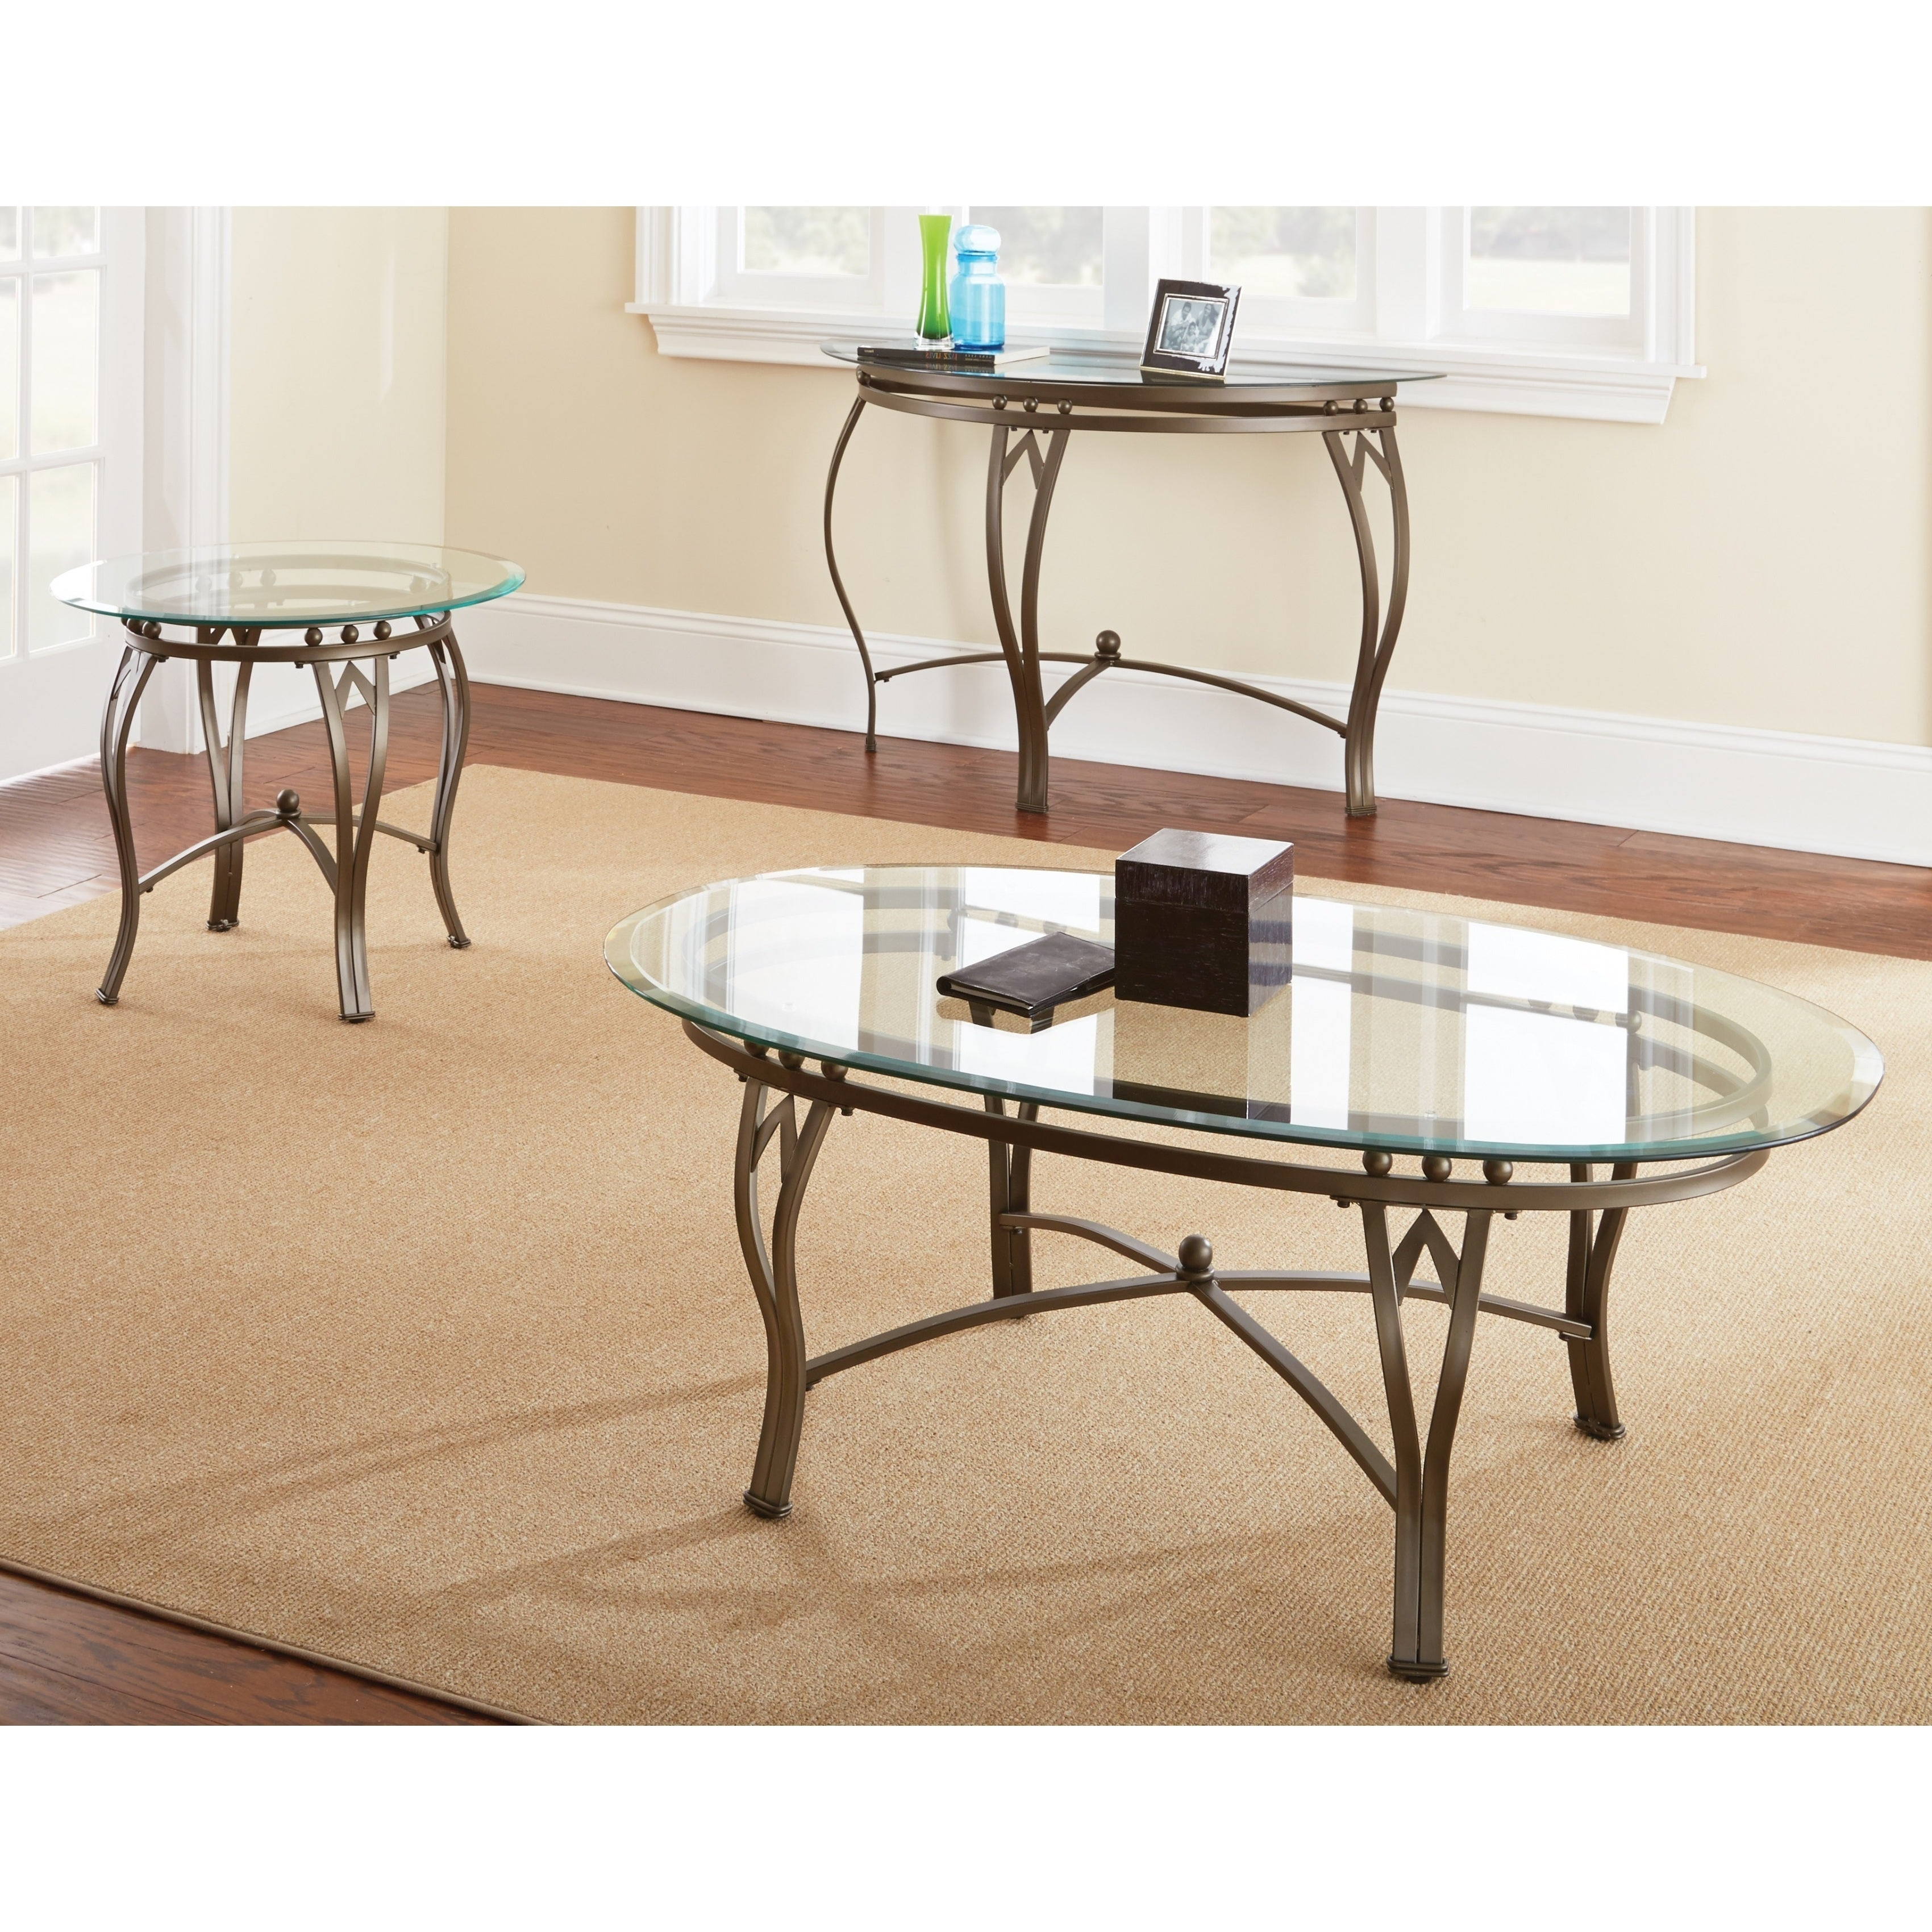 Copper Grove Woodend Glass Top Round End Table Pertaining To Widely Used Copper Grove Woodend Glass Top Oval Coffee Tables (View 7 of 20)